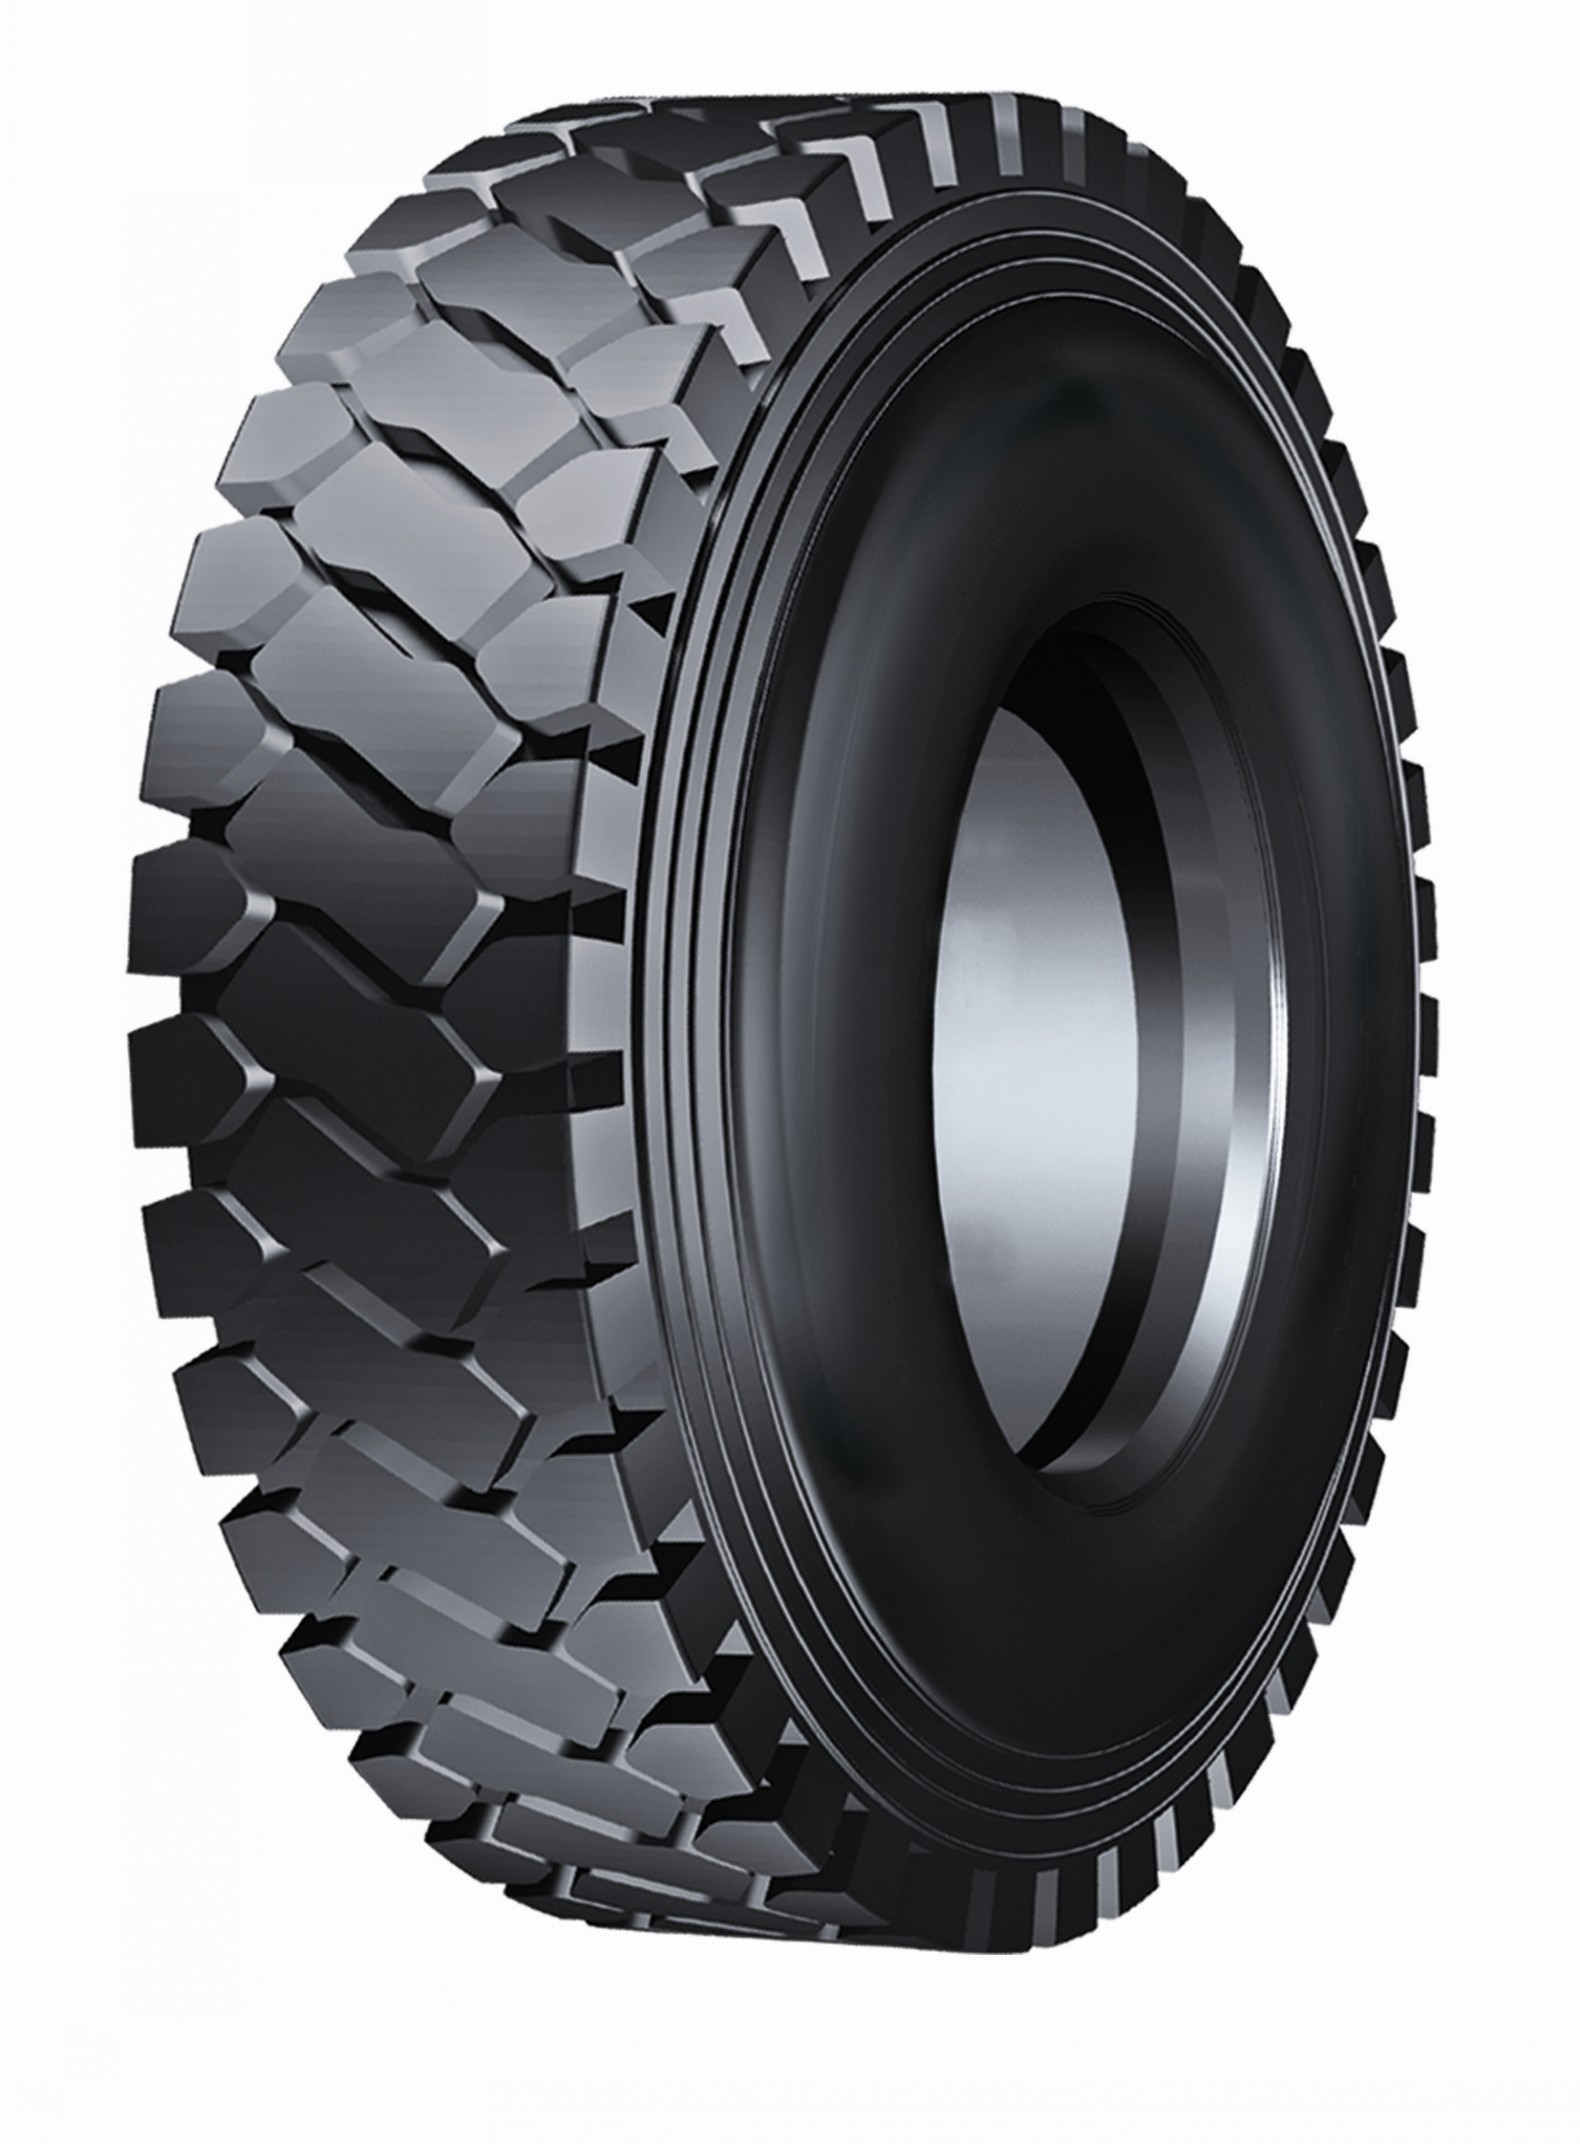 Pictures clip art library. Wheel clipart rubber tire